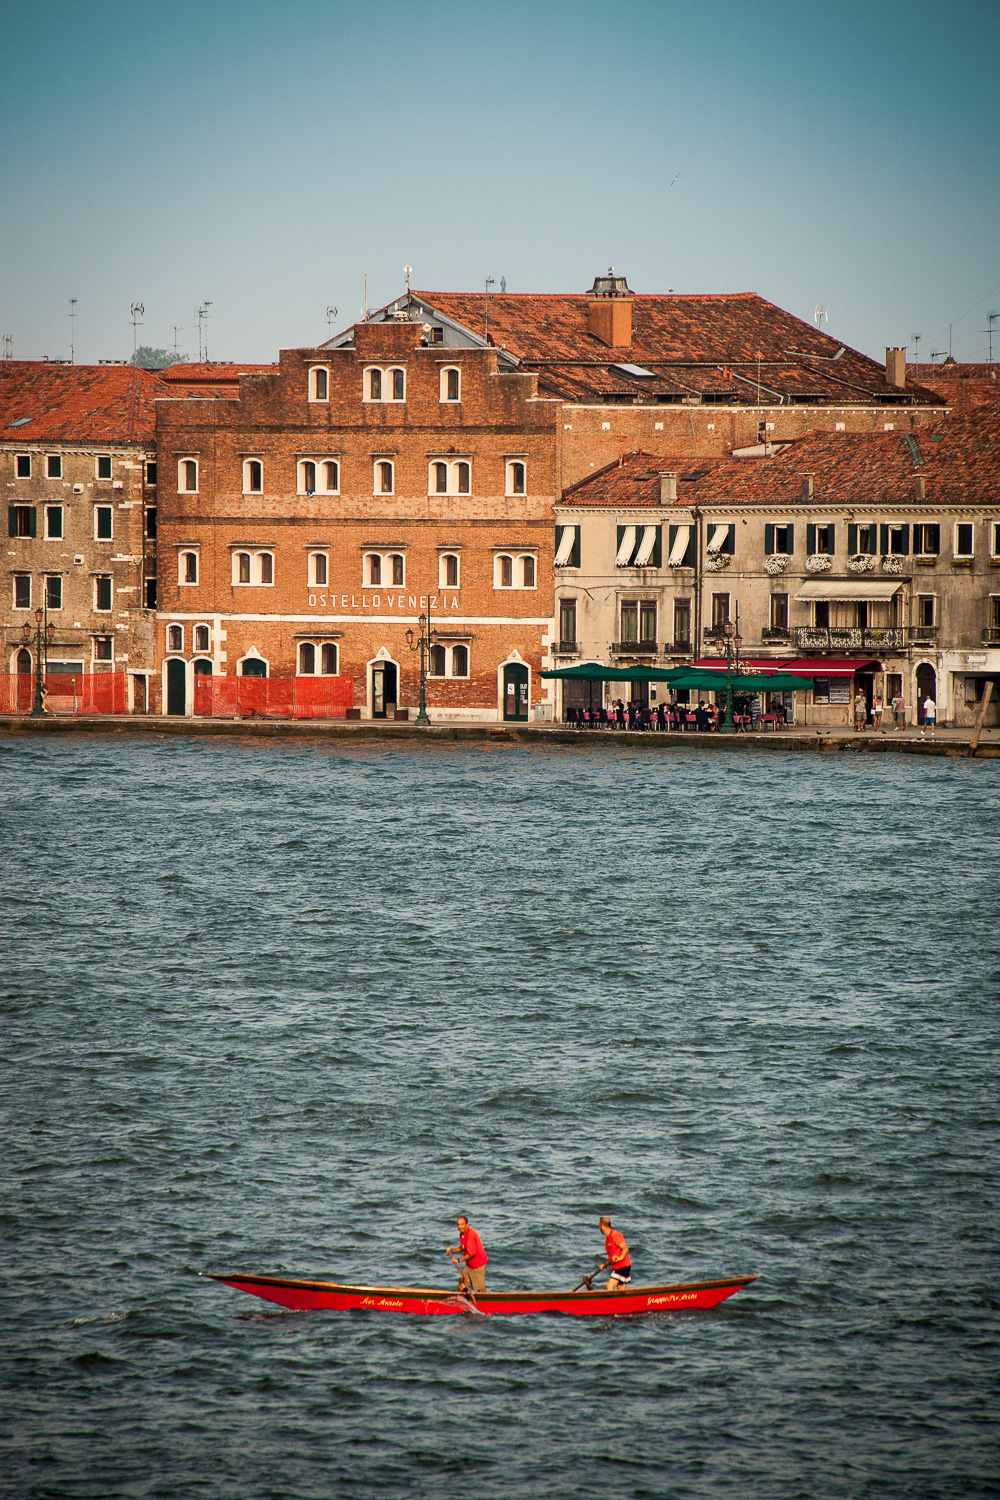 Leaving Venice - Red Boat